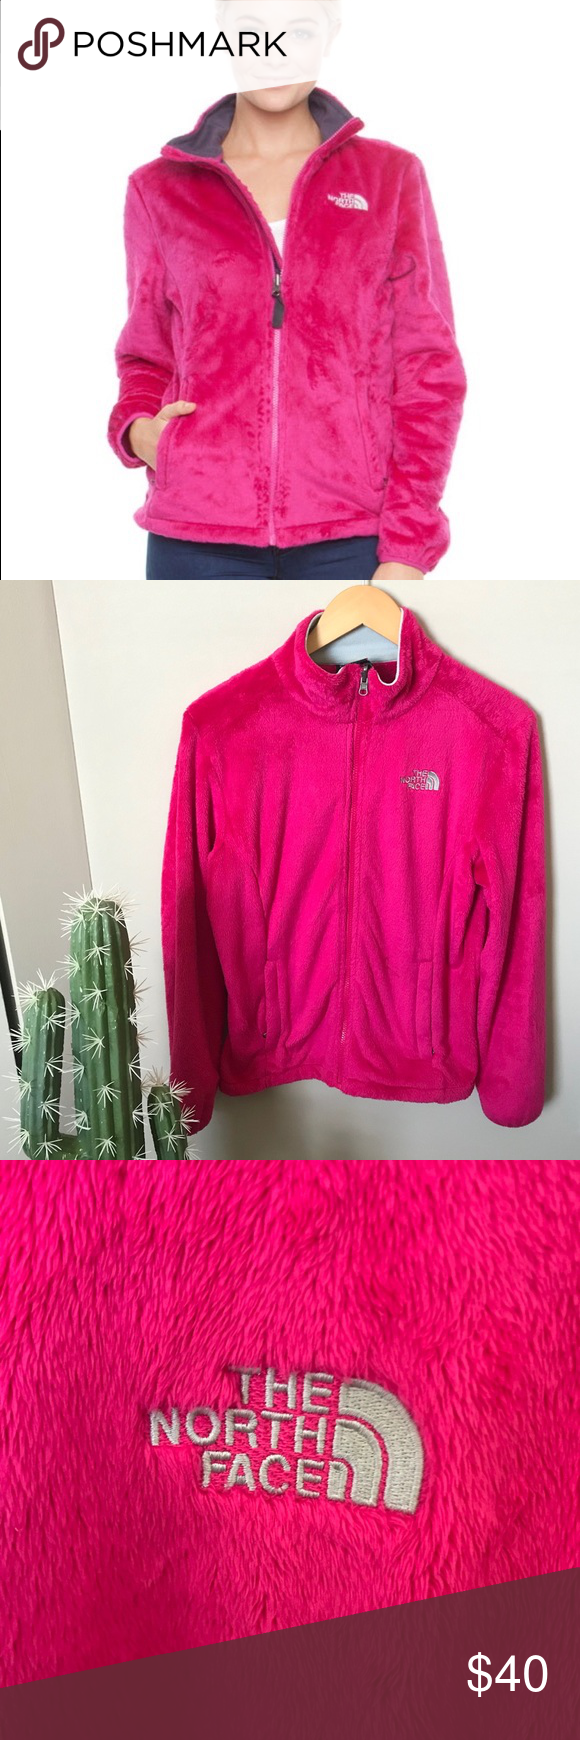 Pink Fuzzy North Face North Face Jacket The North Face Fuzzy Jacket [ 1740 x 580 Pixel ]